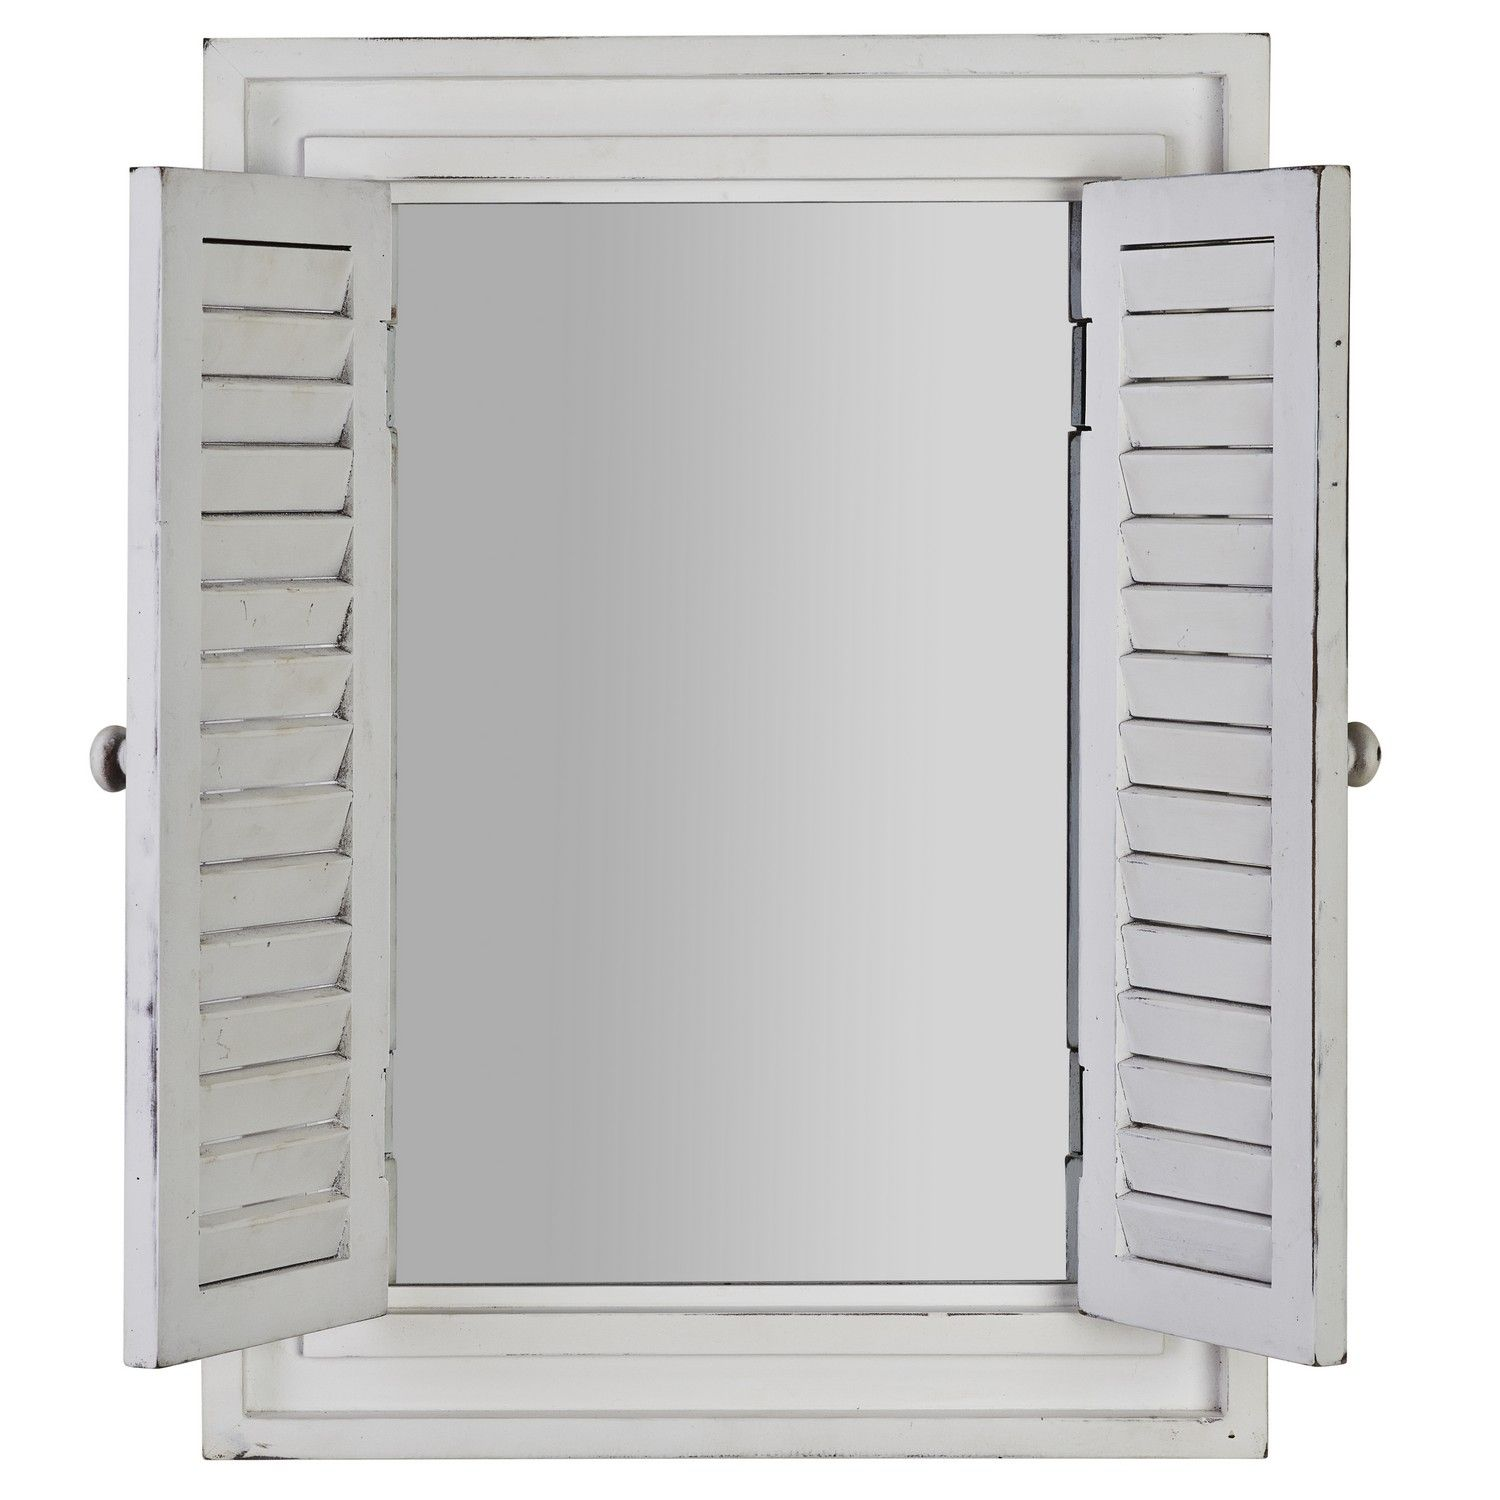 The Shutter Mirror Features A Square Mirror Set Inside A